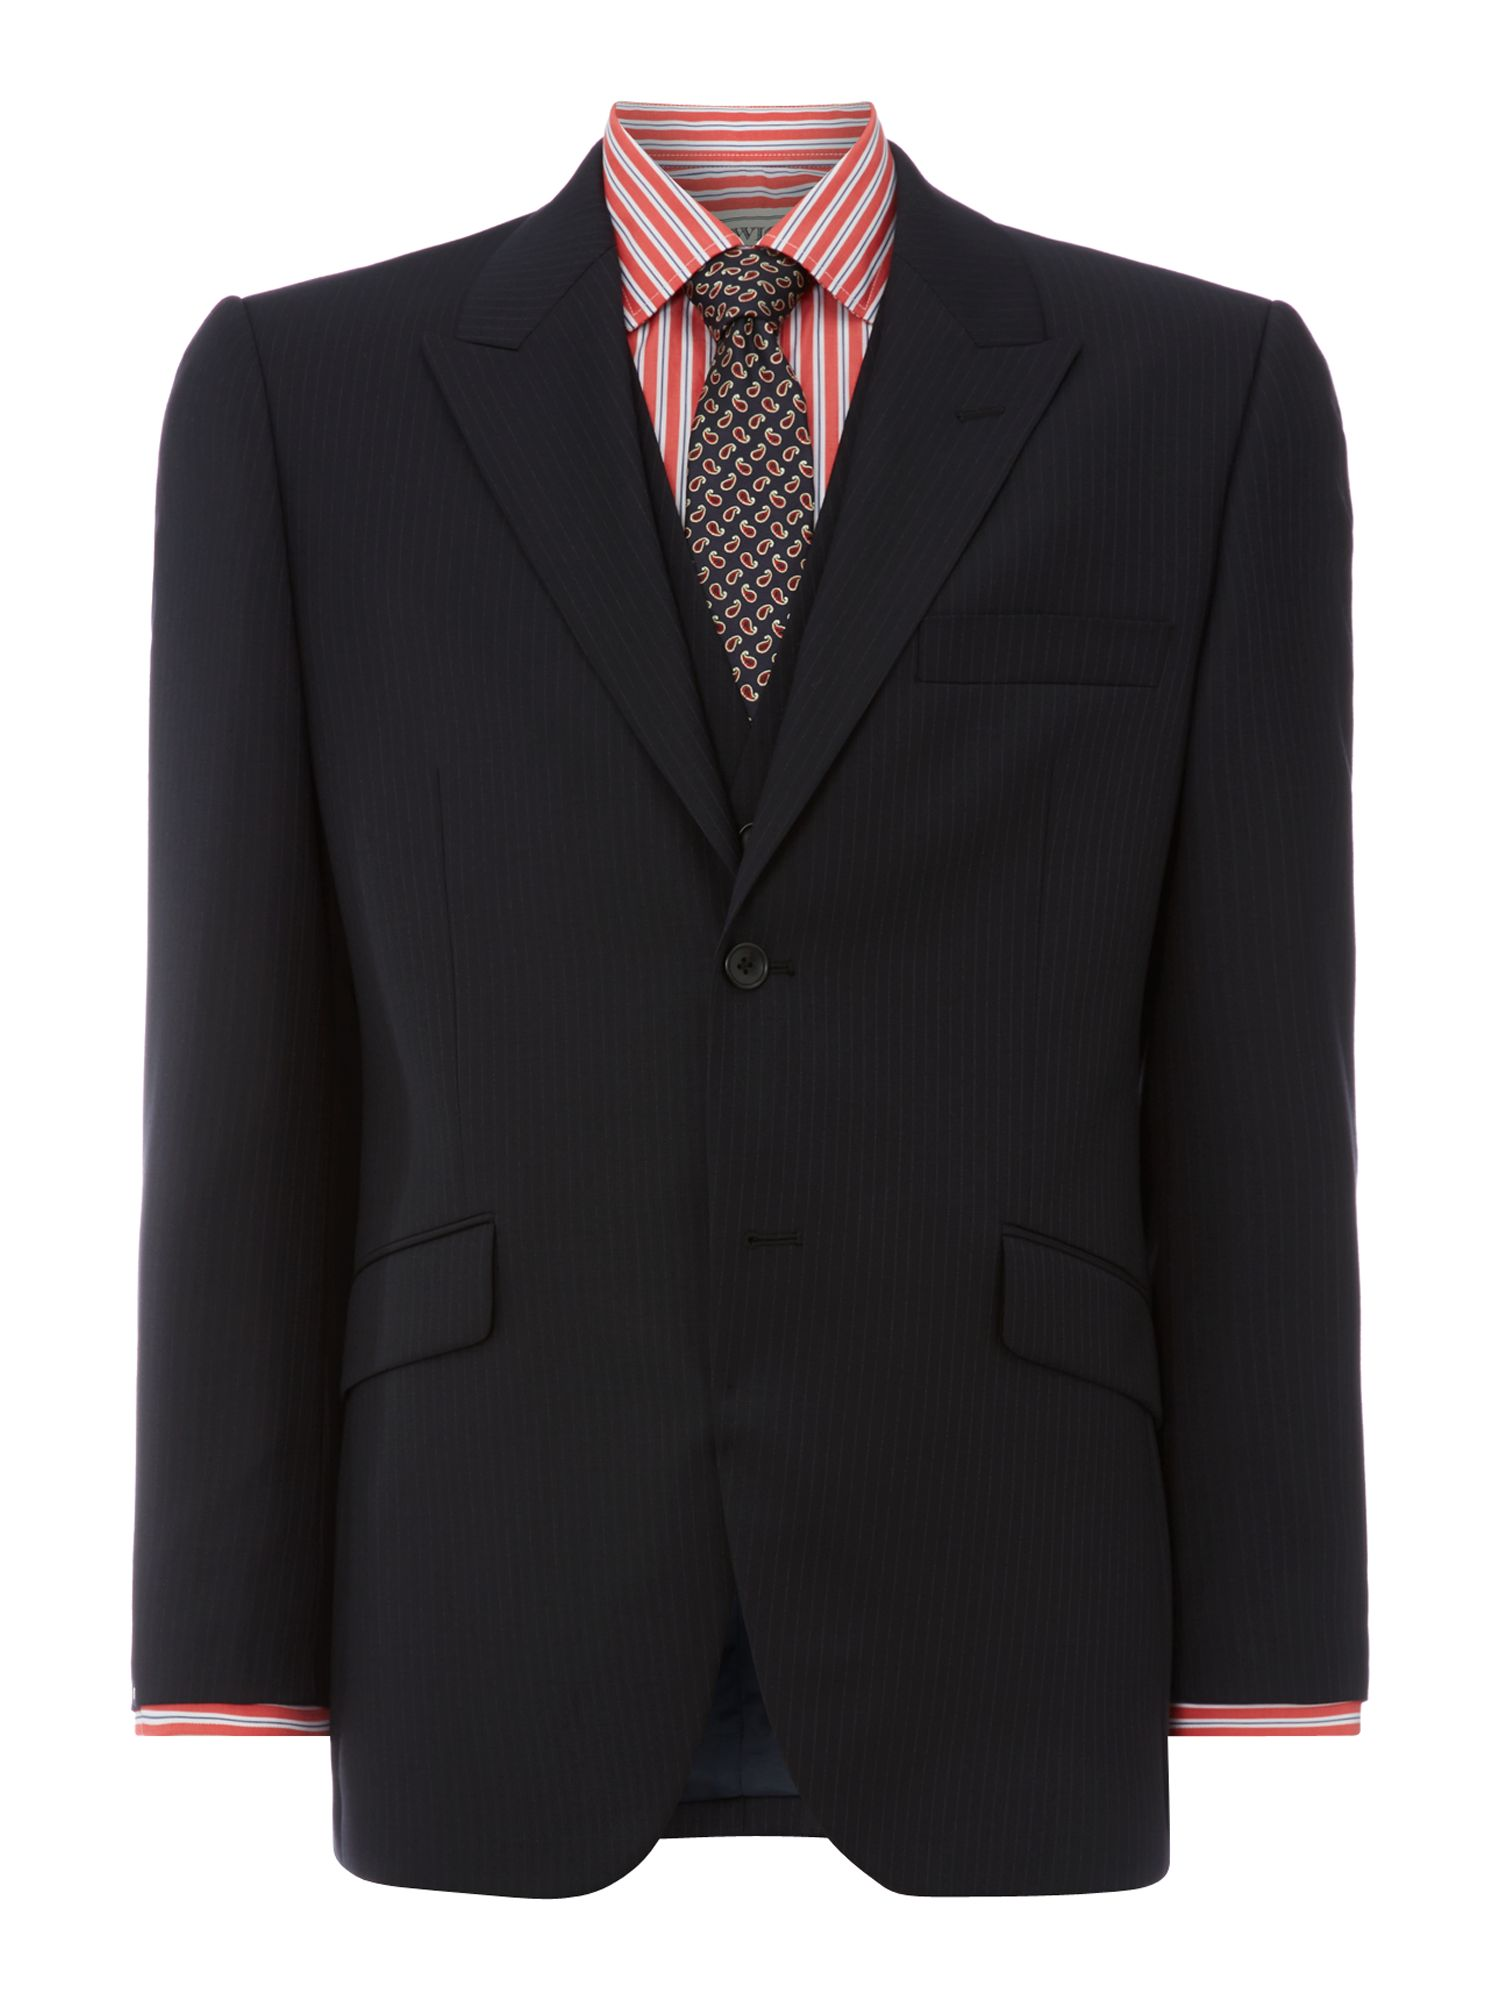 Prospect textured fine stripe peak suit jacket